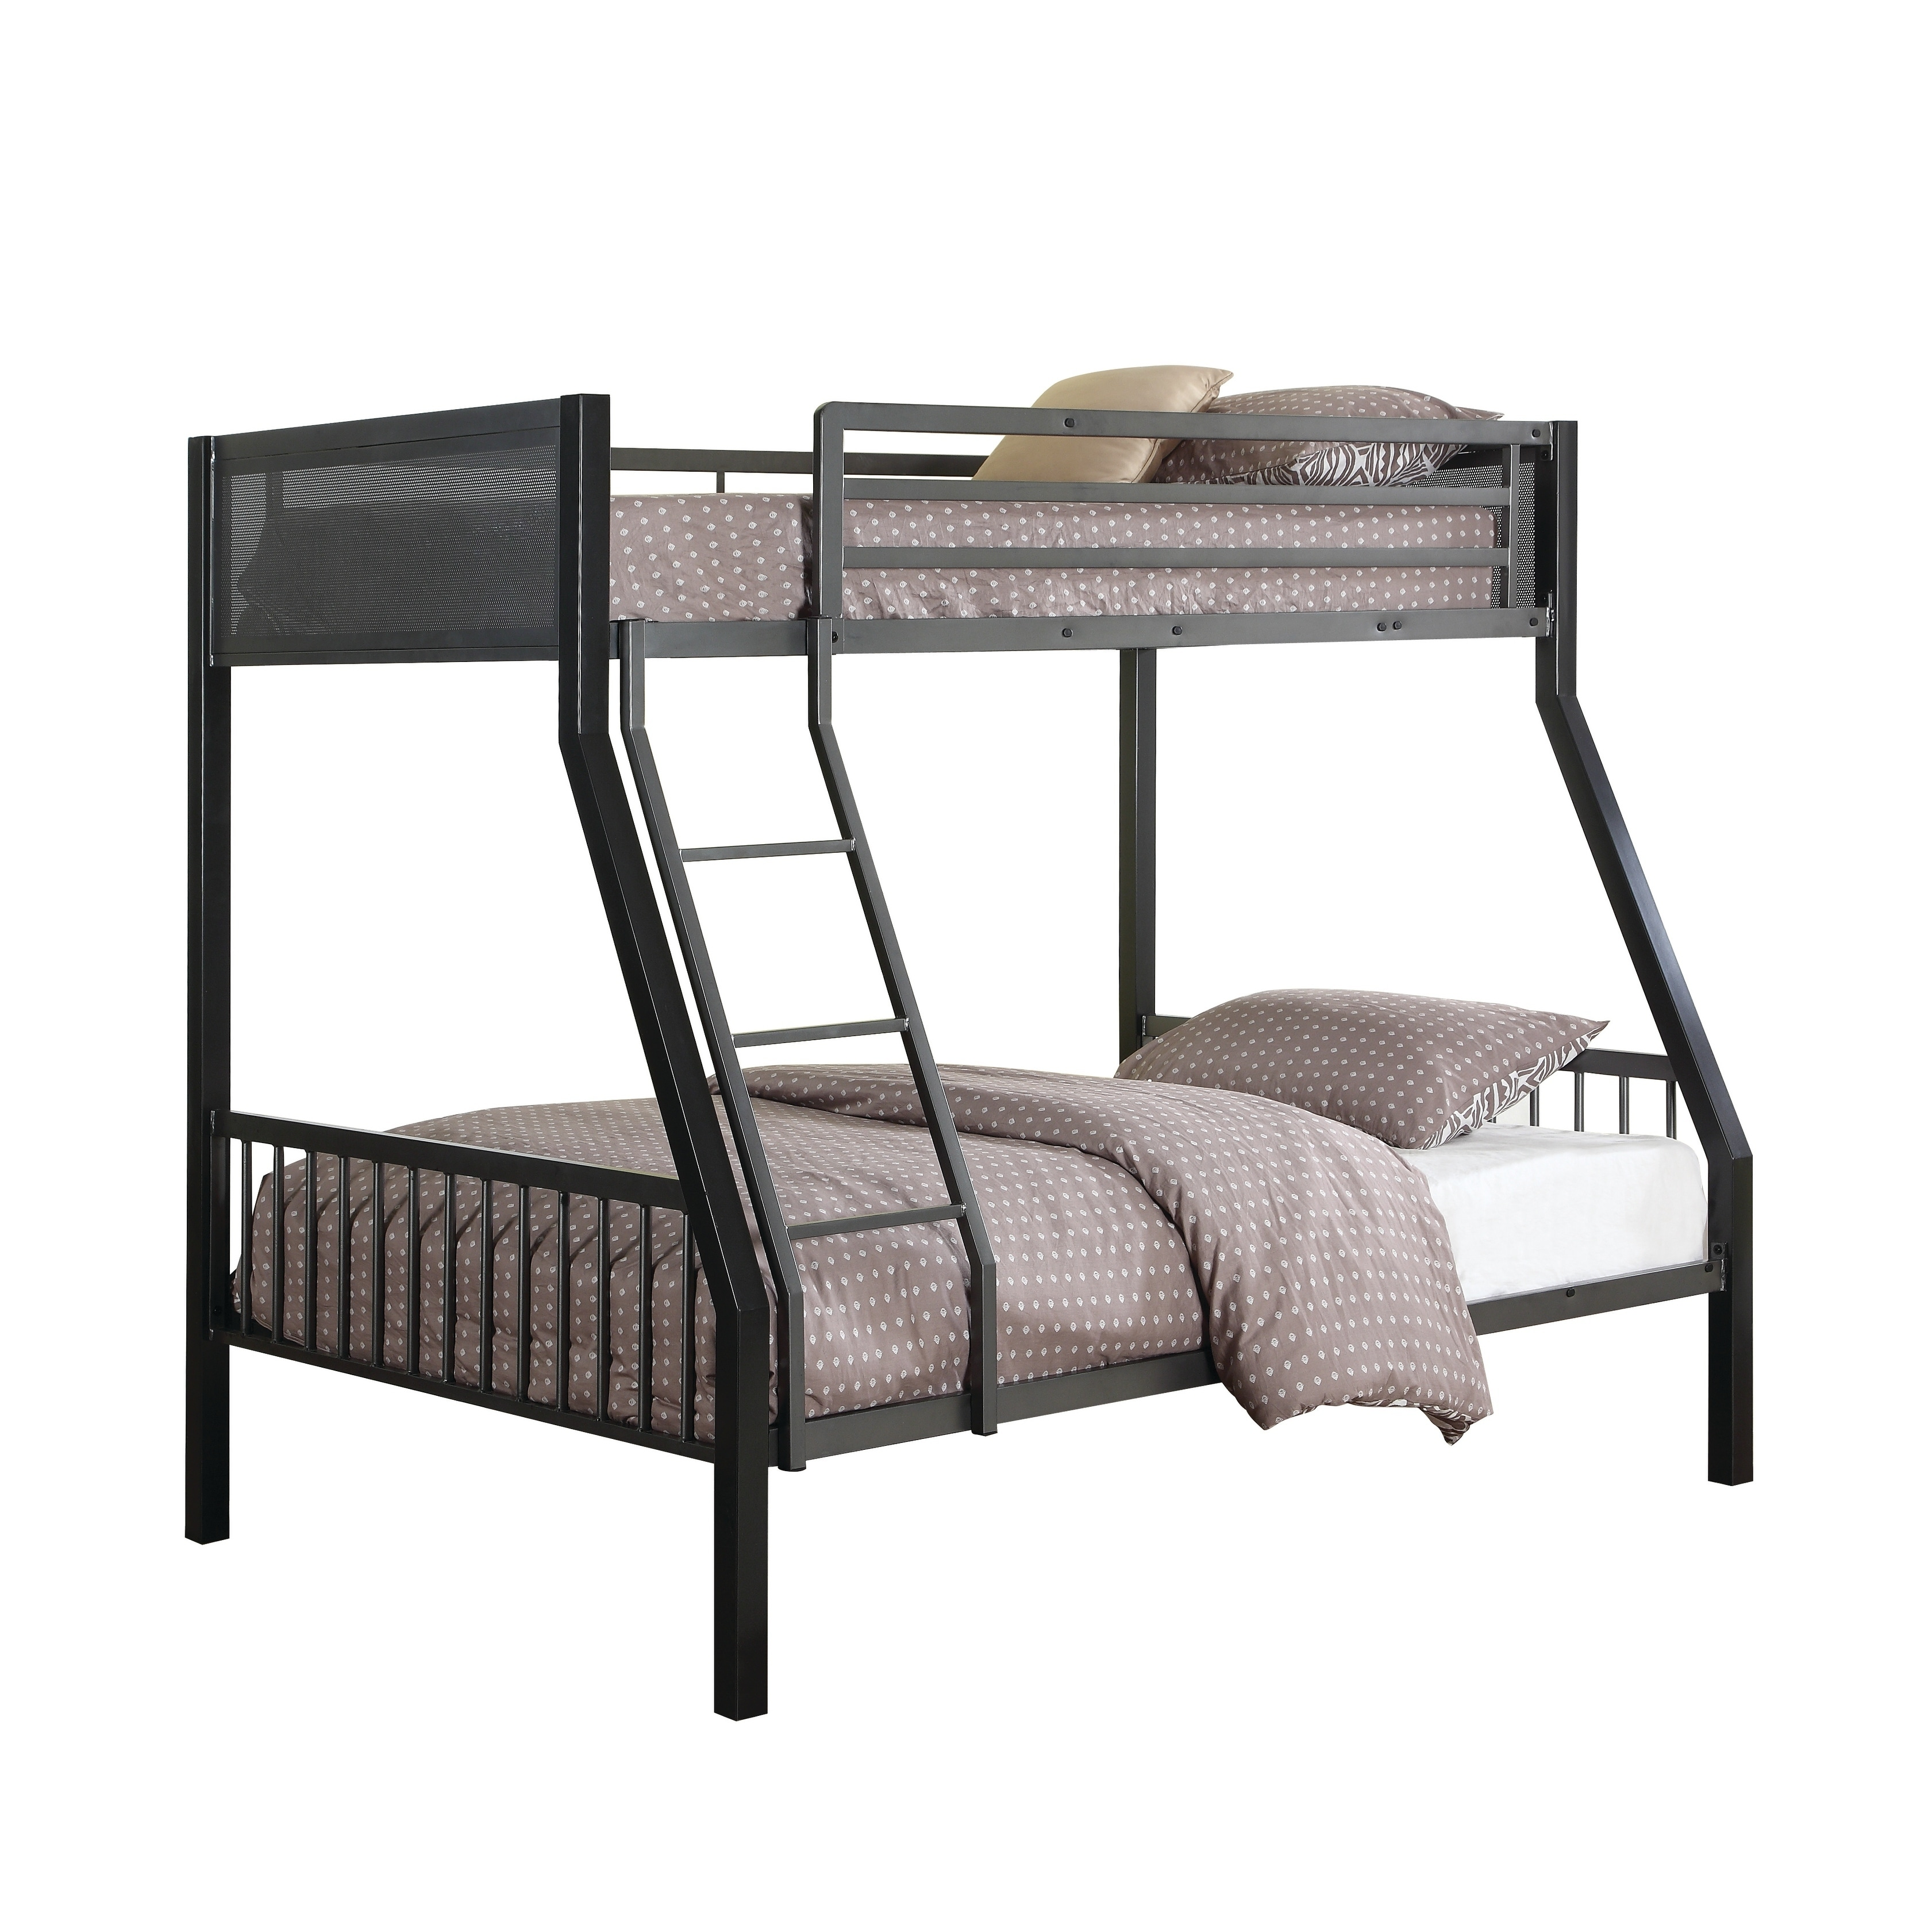 Image result for metal twin over full bunk bed